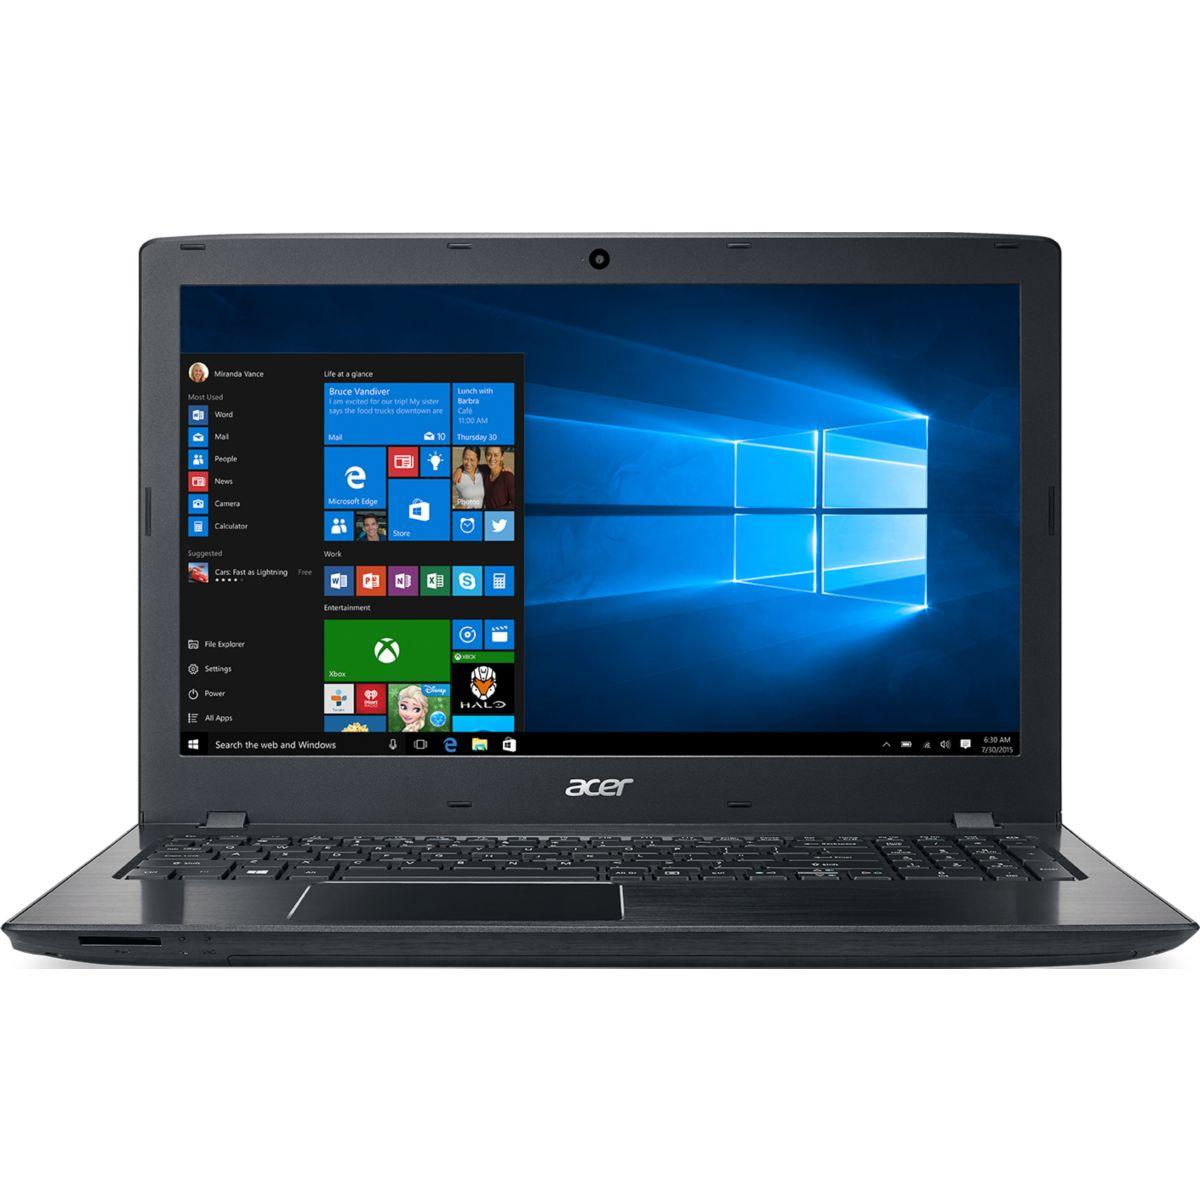 Portable acer aspire e5-575g-53w2 (photo)